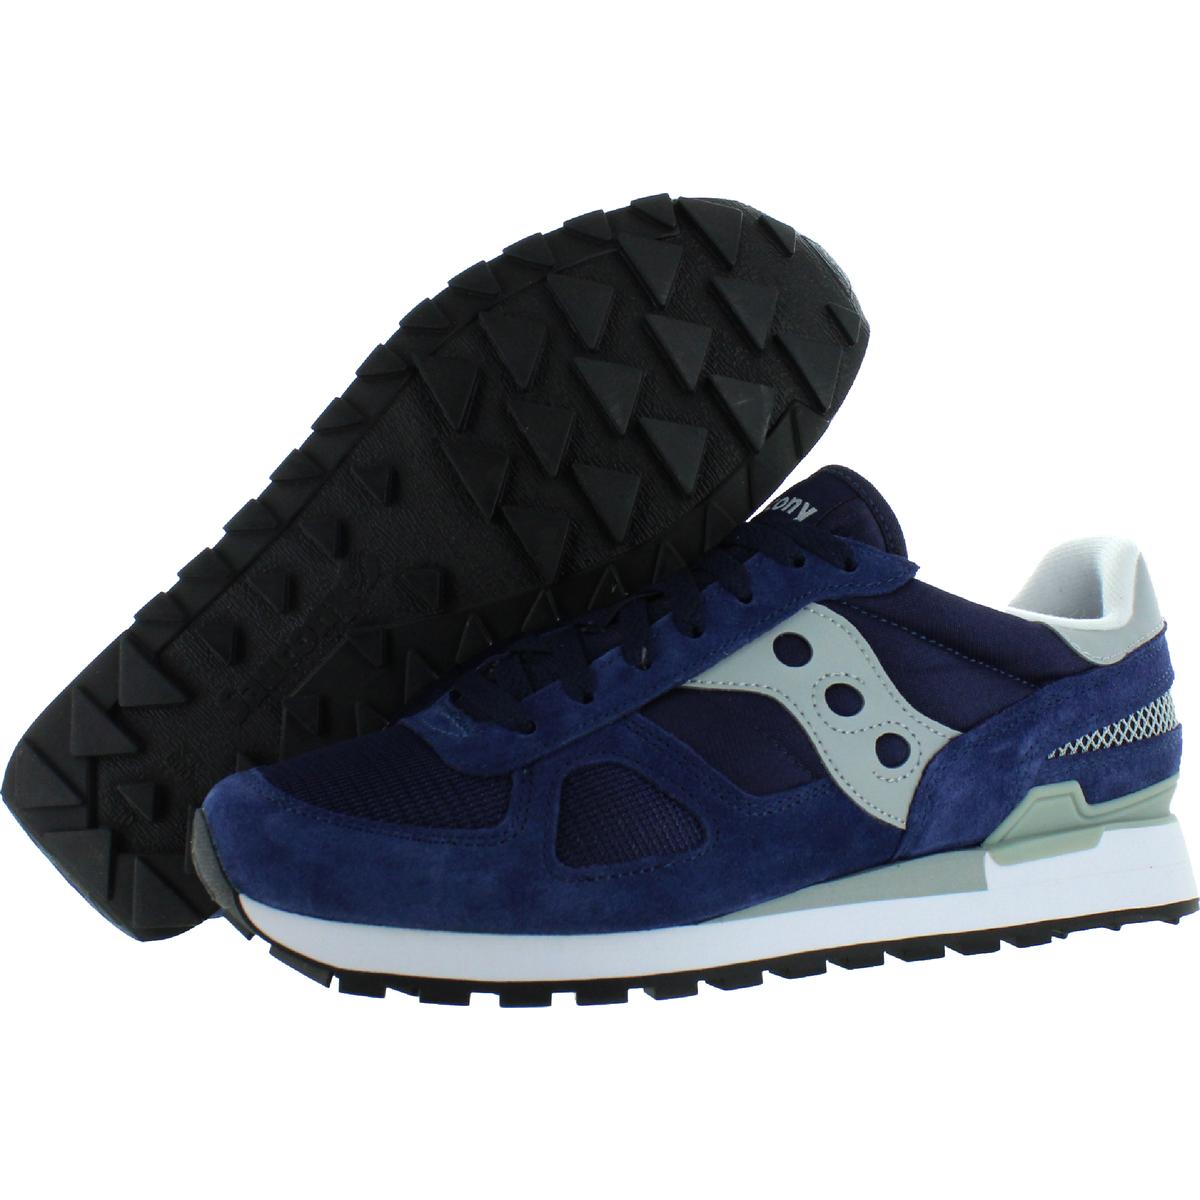 Saucony-Mens-Shadow-Original-Trainers-Suede-Comfort-Sneakers-Shoes-BHFO-0431 miniatuur 24